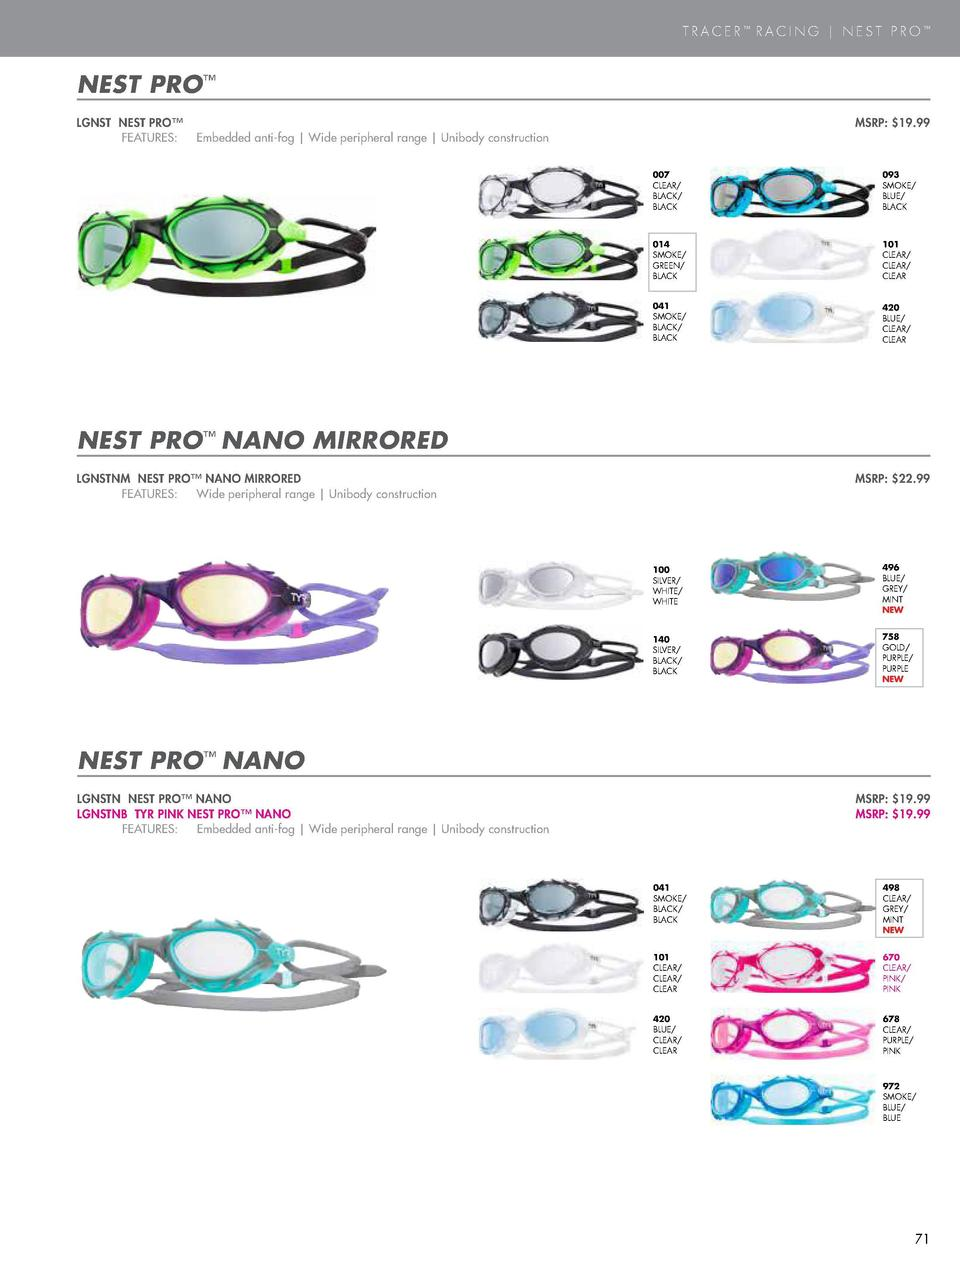 PERFORMANCE GOGGLES  TRACER    RACING   NEST PRO     TRACER    RACING JUNIOR MIRRORED  NEST PRO     LGTRYM TRACER    RACIN...